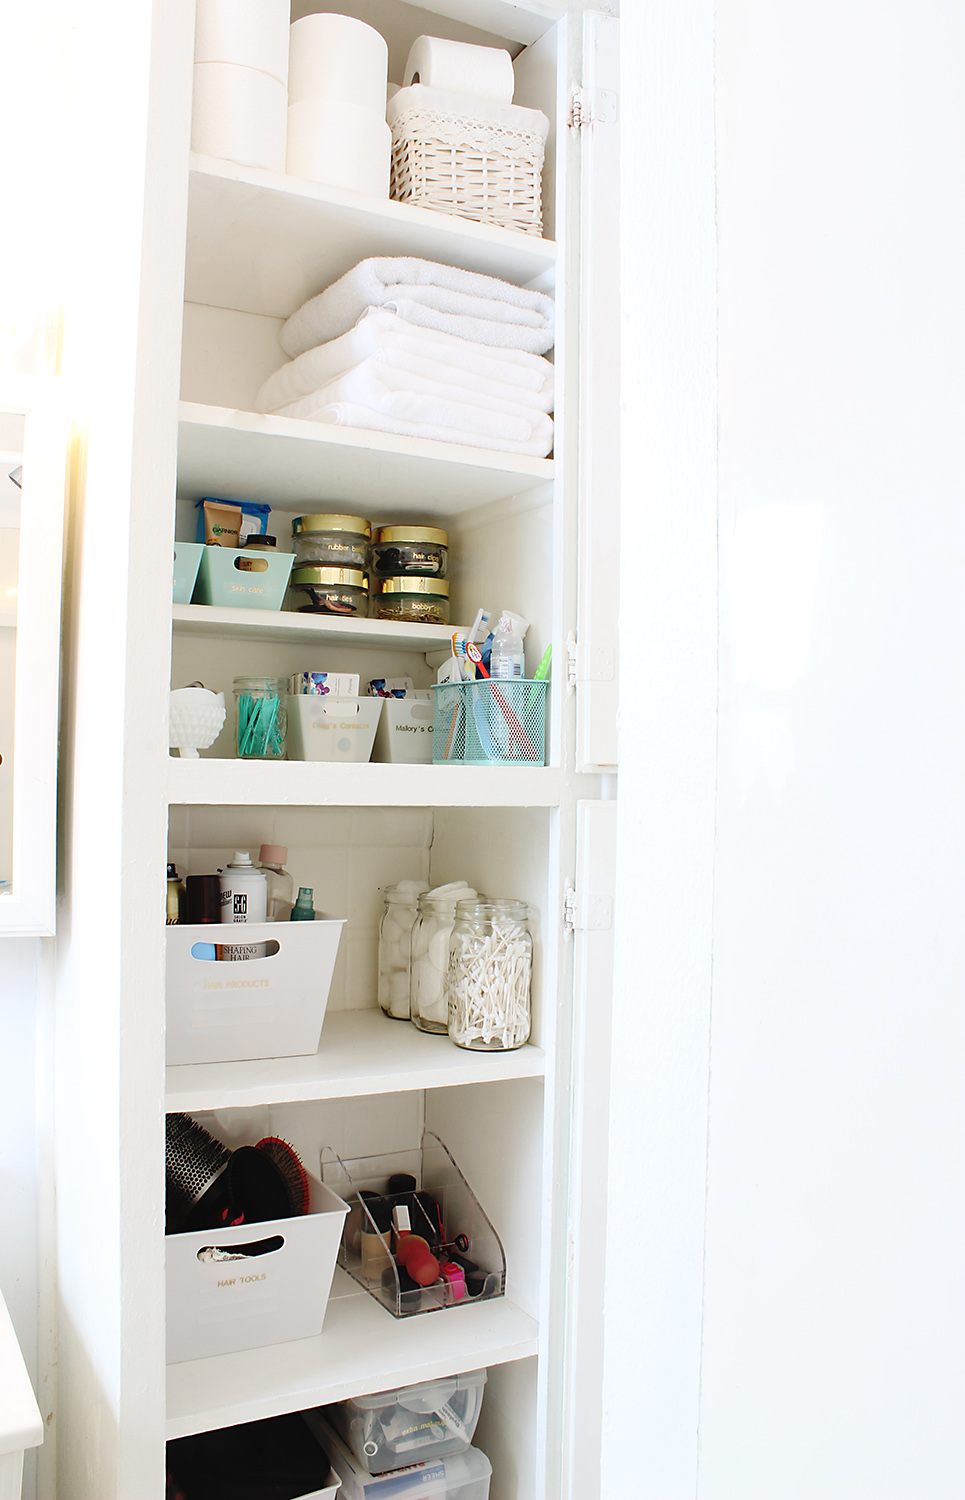 How to organize your bathroom in 3 easy steps classy clutter for How to organize your closets